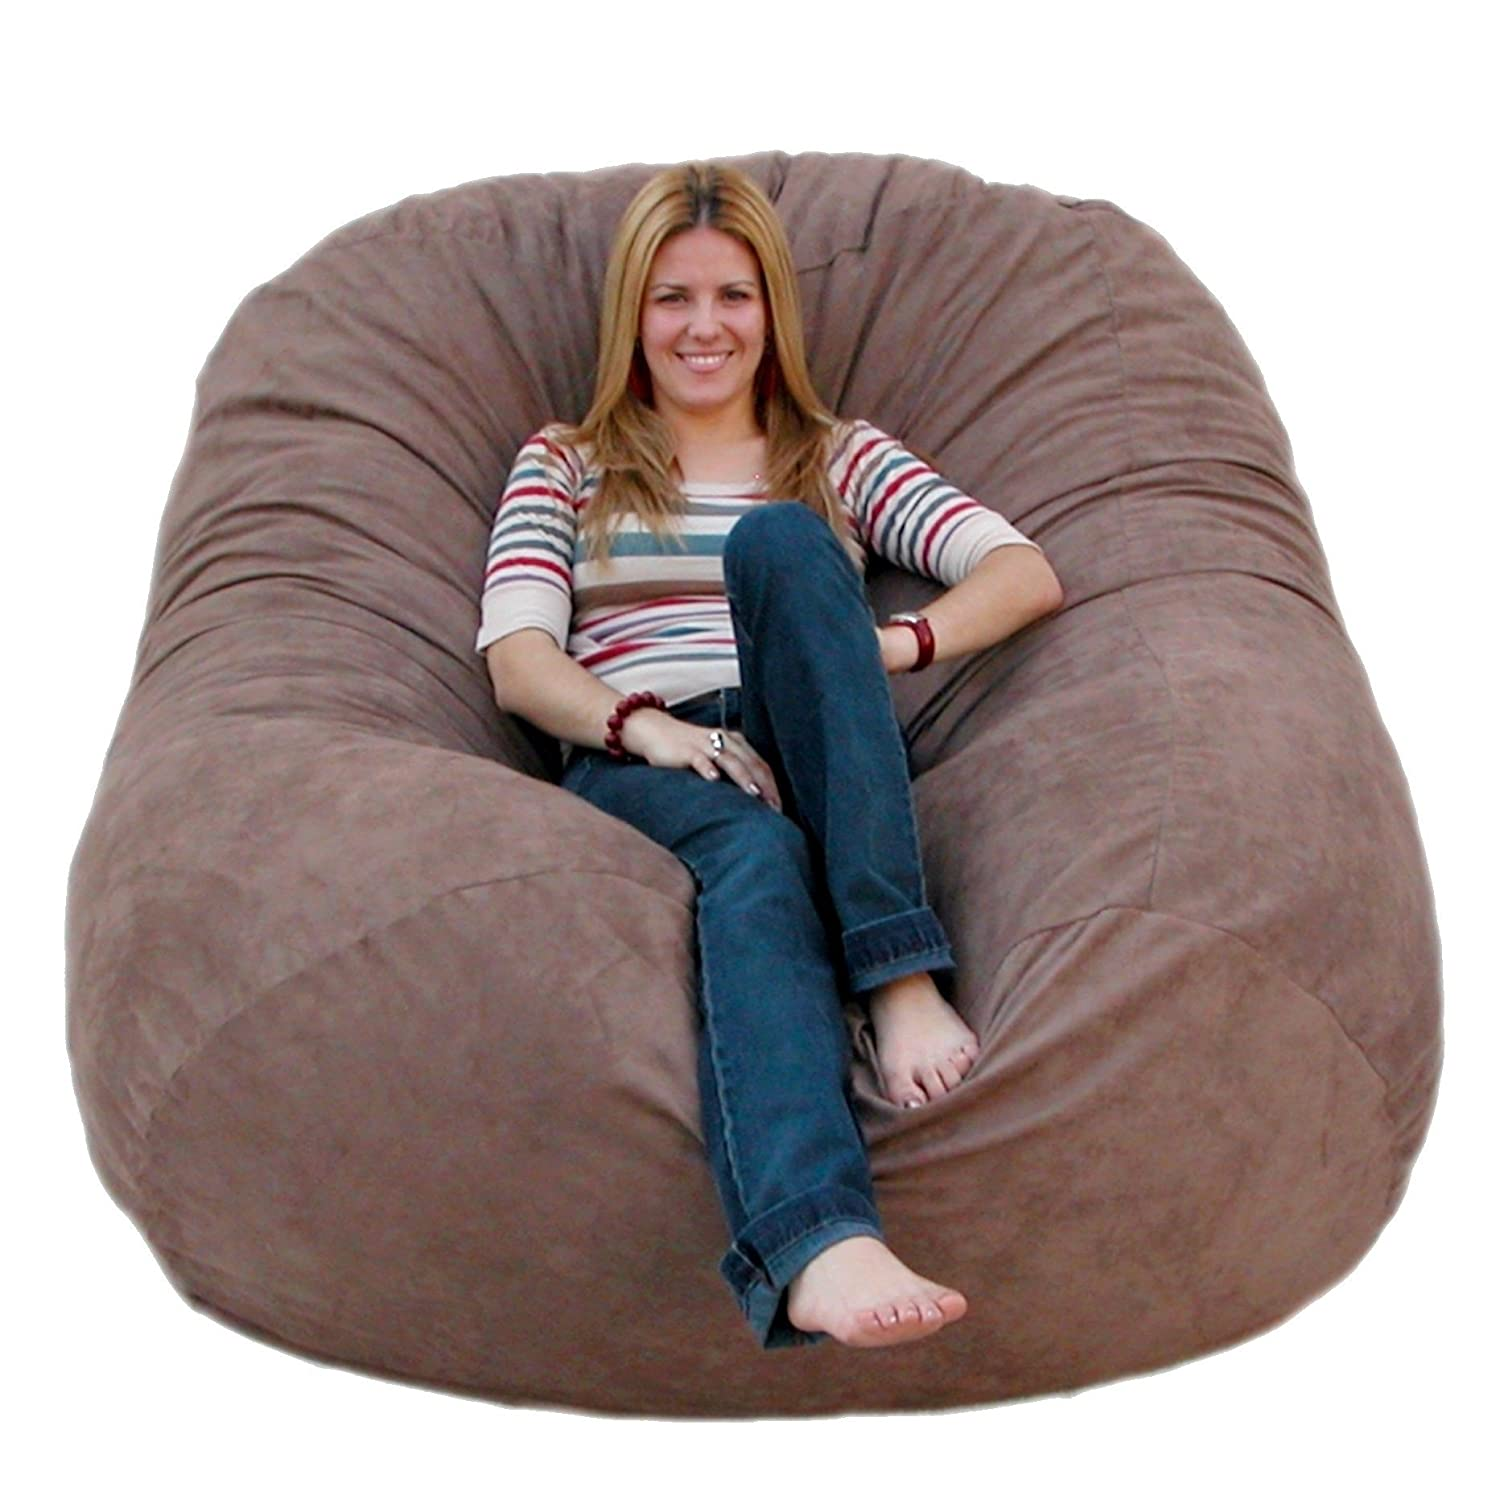 giant bean bag chairs home decor. Black Bedroom Furniture Sets. Home Design Ideas